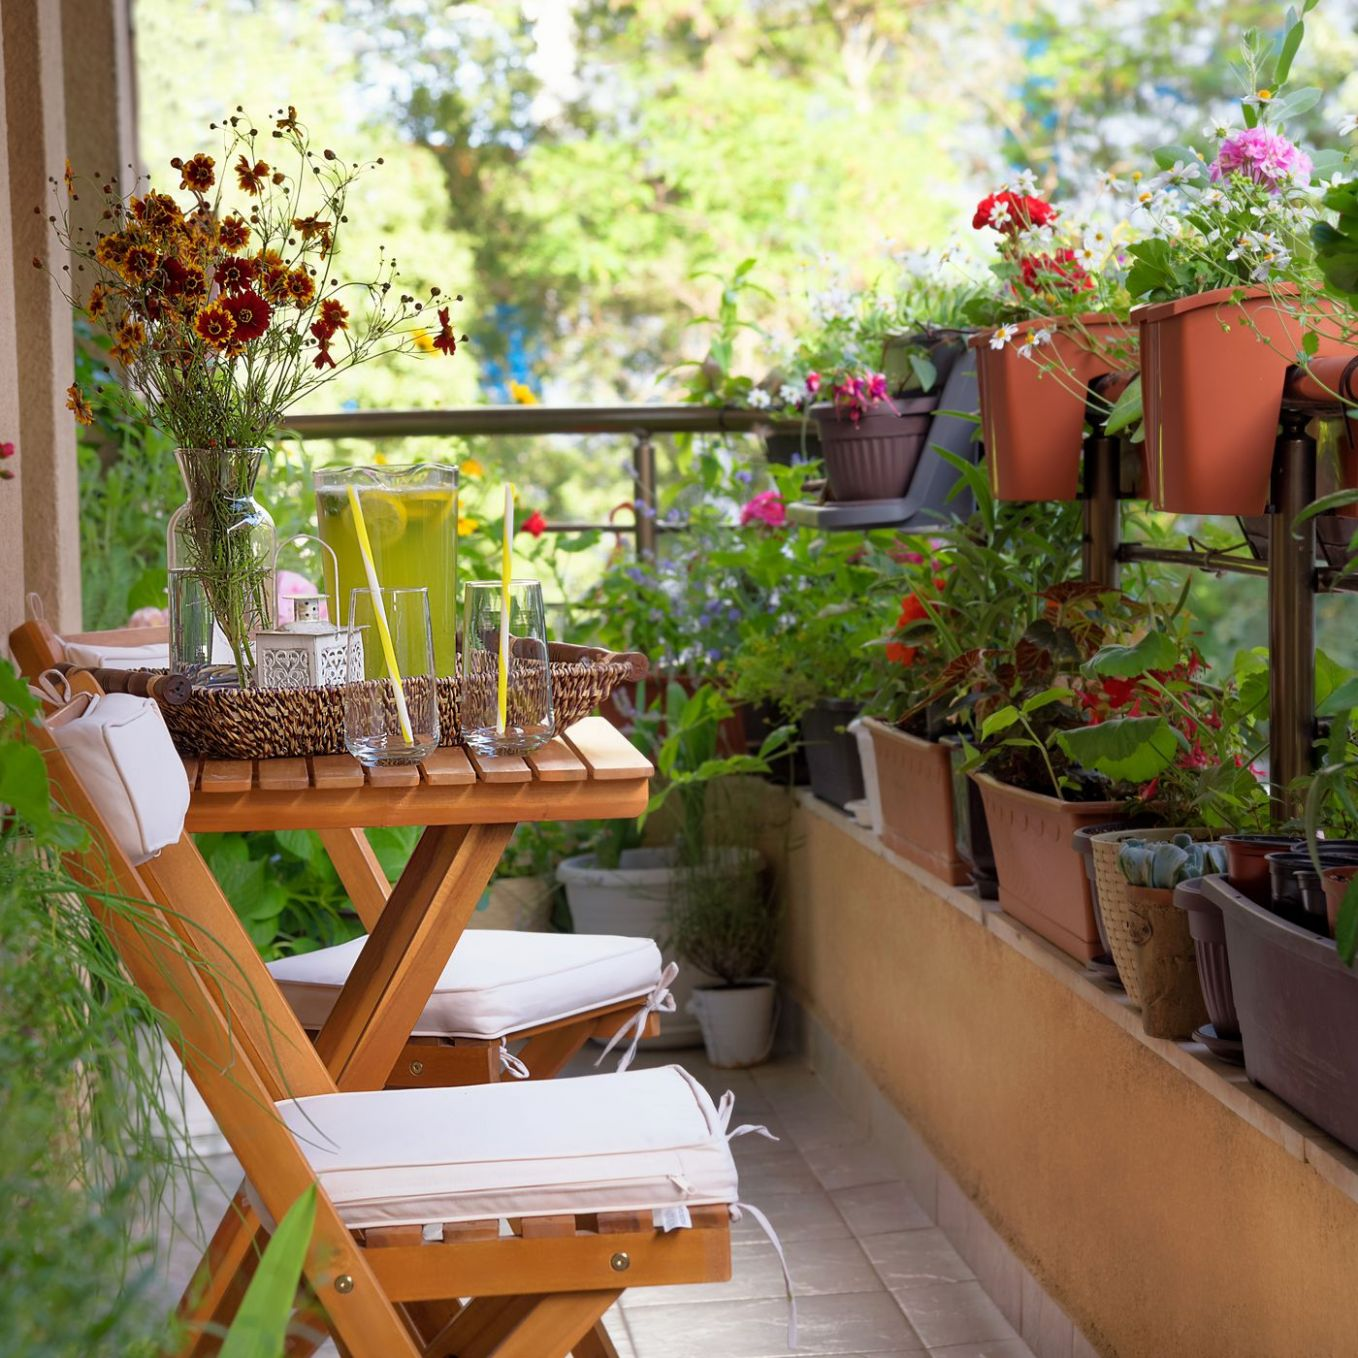 Urban gardening: Ideas, tips, and products for small spaces - Curbed - jungle balcony ideas